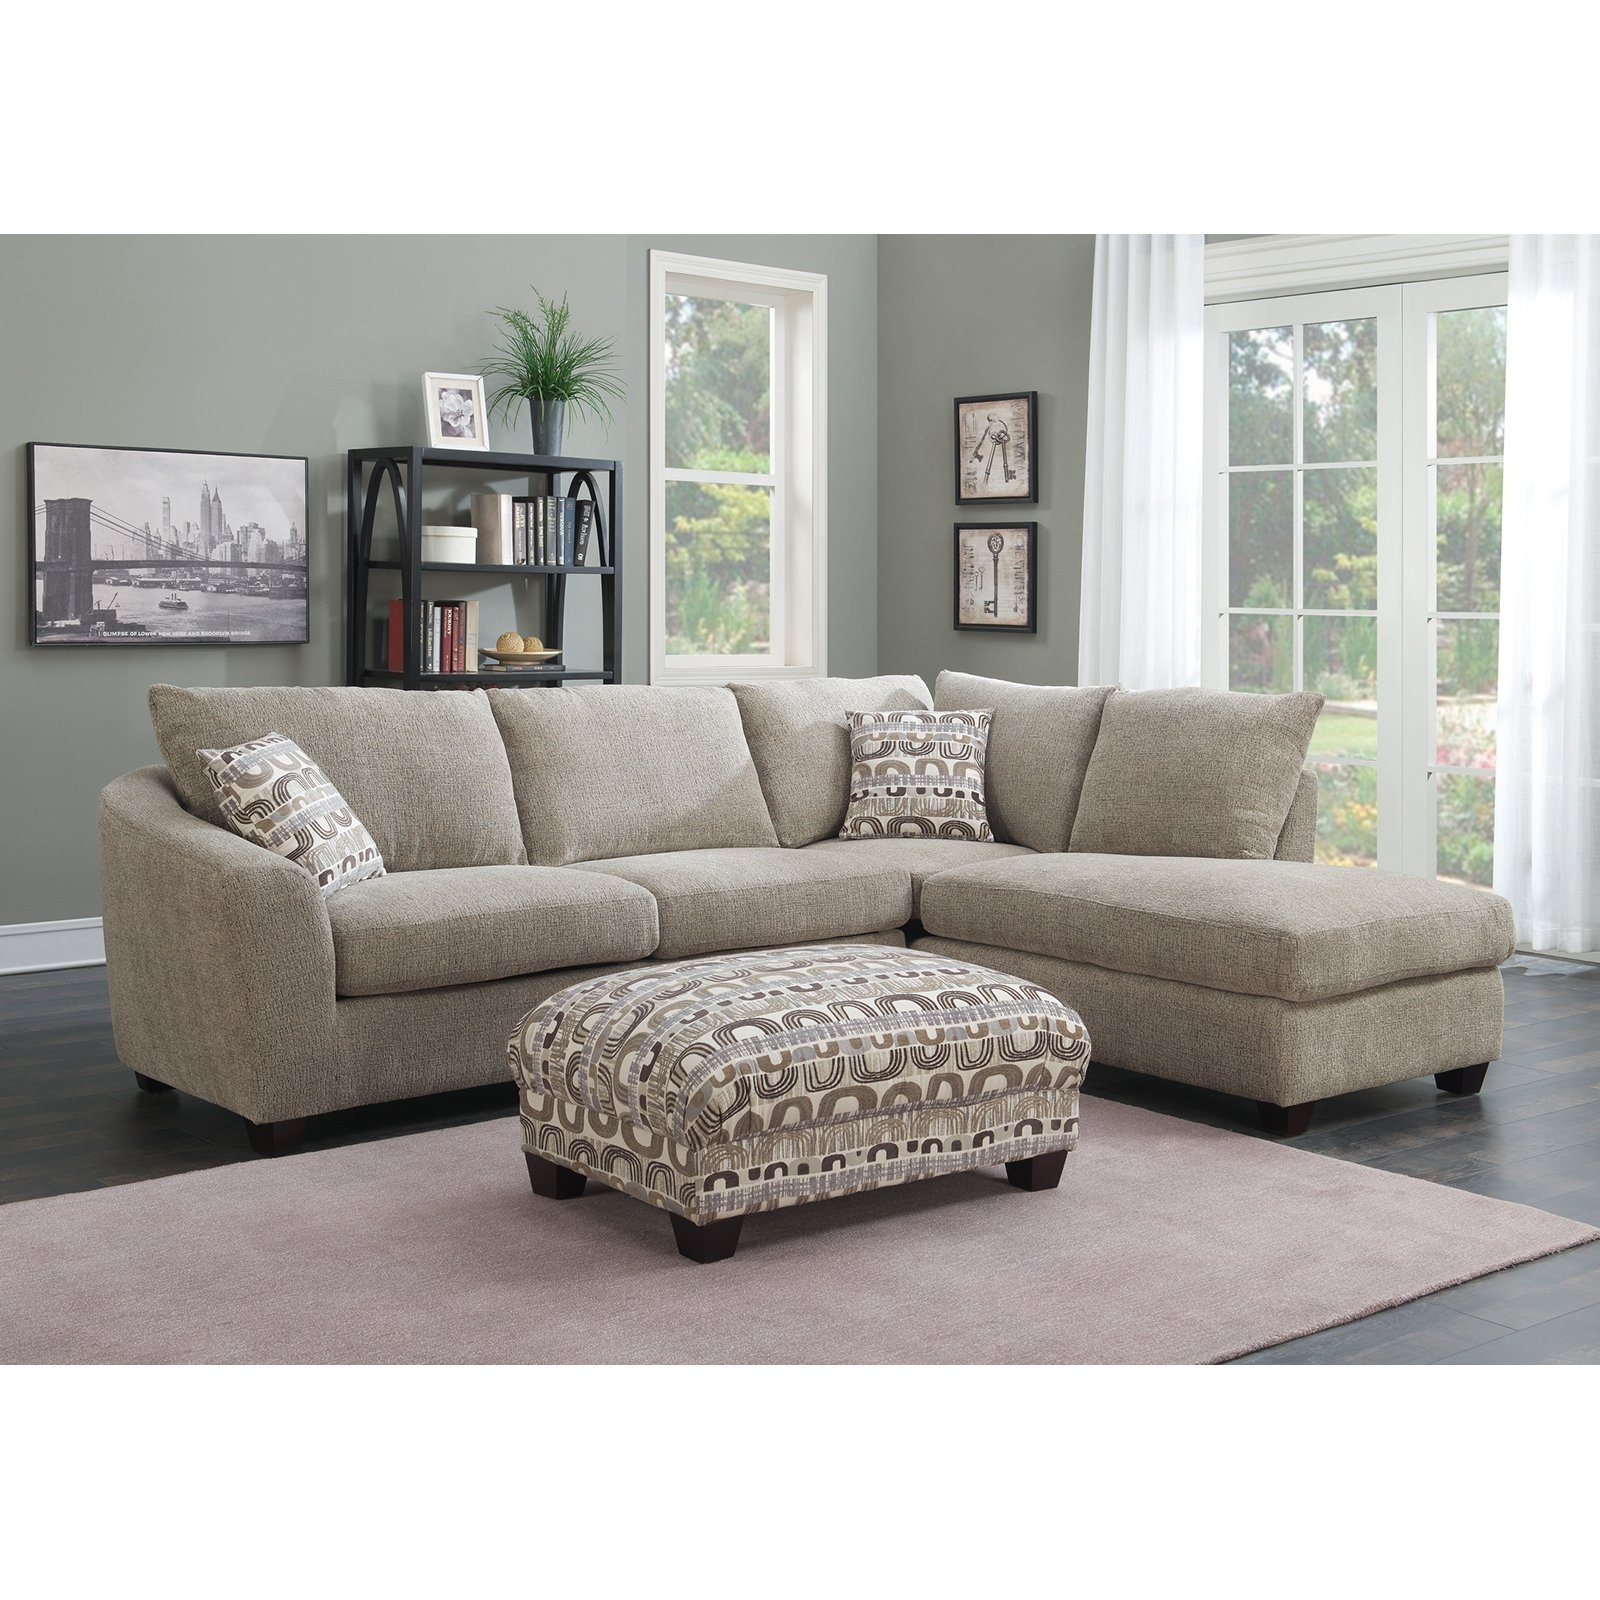 Emerald Home Urbana Piece Sectional Sofa With Chaise Couch Double Inside Kerri 2 Piece Sectionals With Laf Chaise (View 12 of 25)